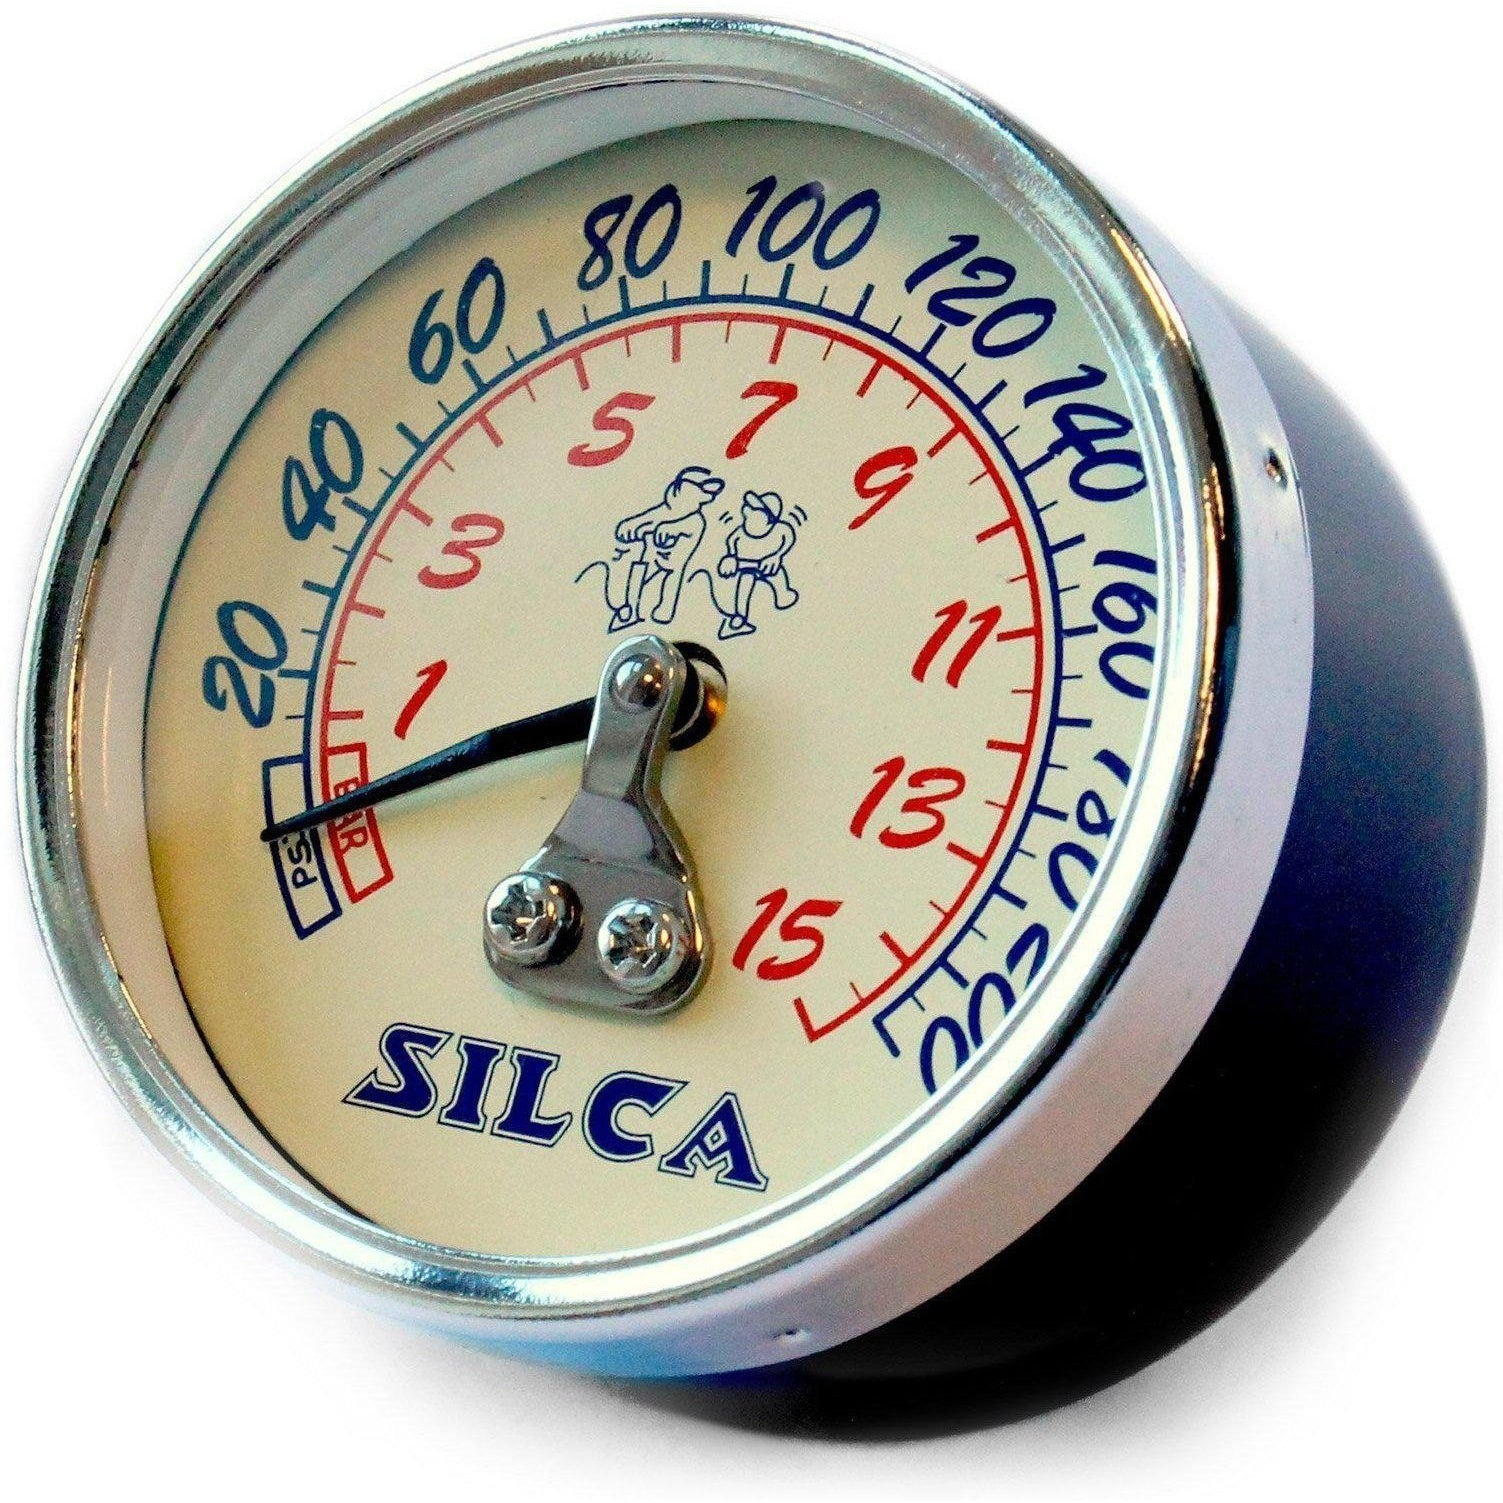 Silca-Silca 210psi Replacement Gauge for Pista and SuperPista-White-Uni-SIAMPUSPACOM005-saddleback-elite-performance-cycling